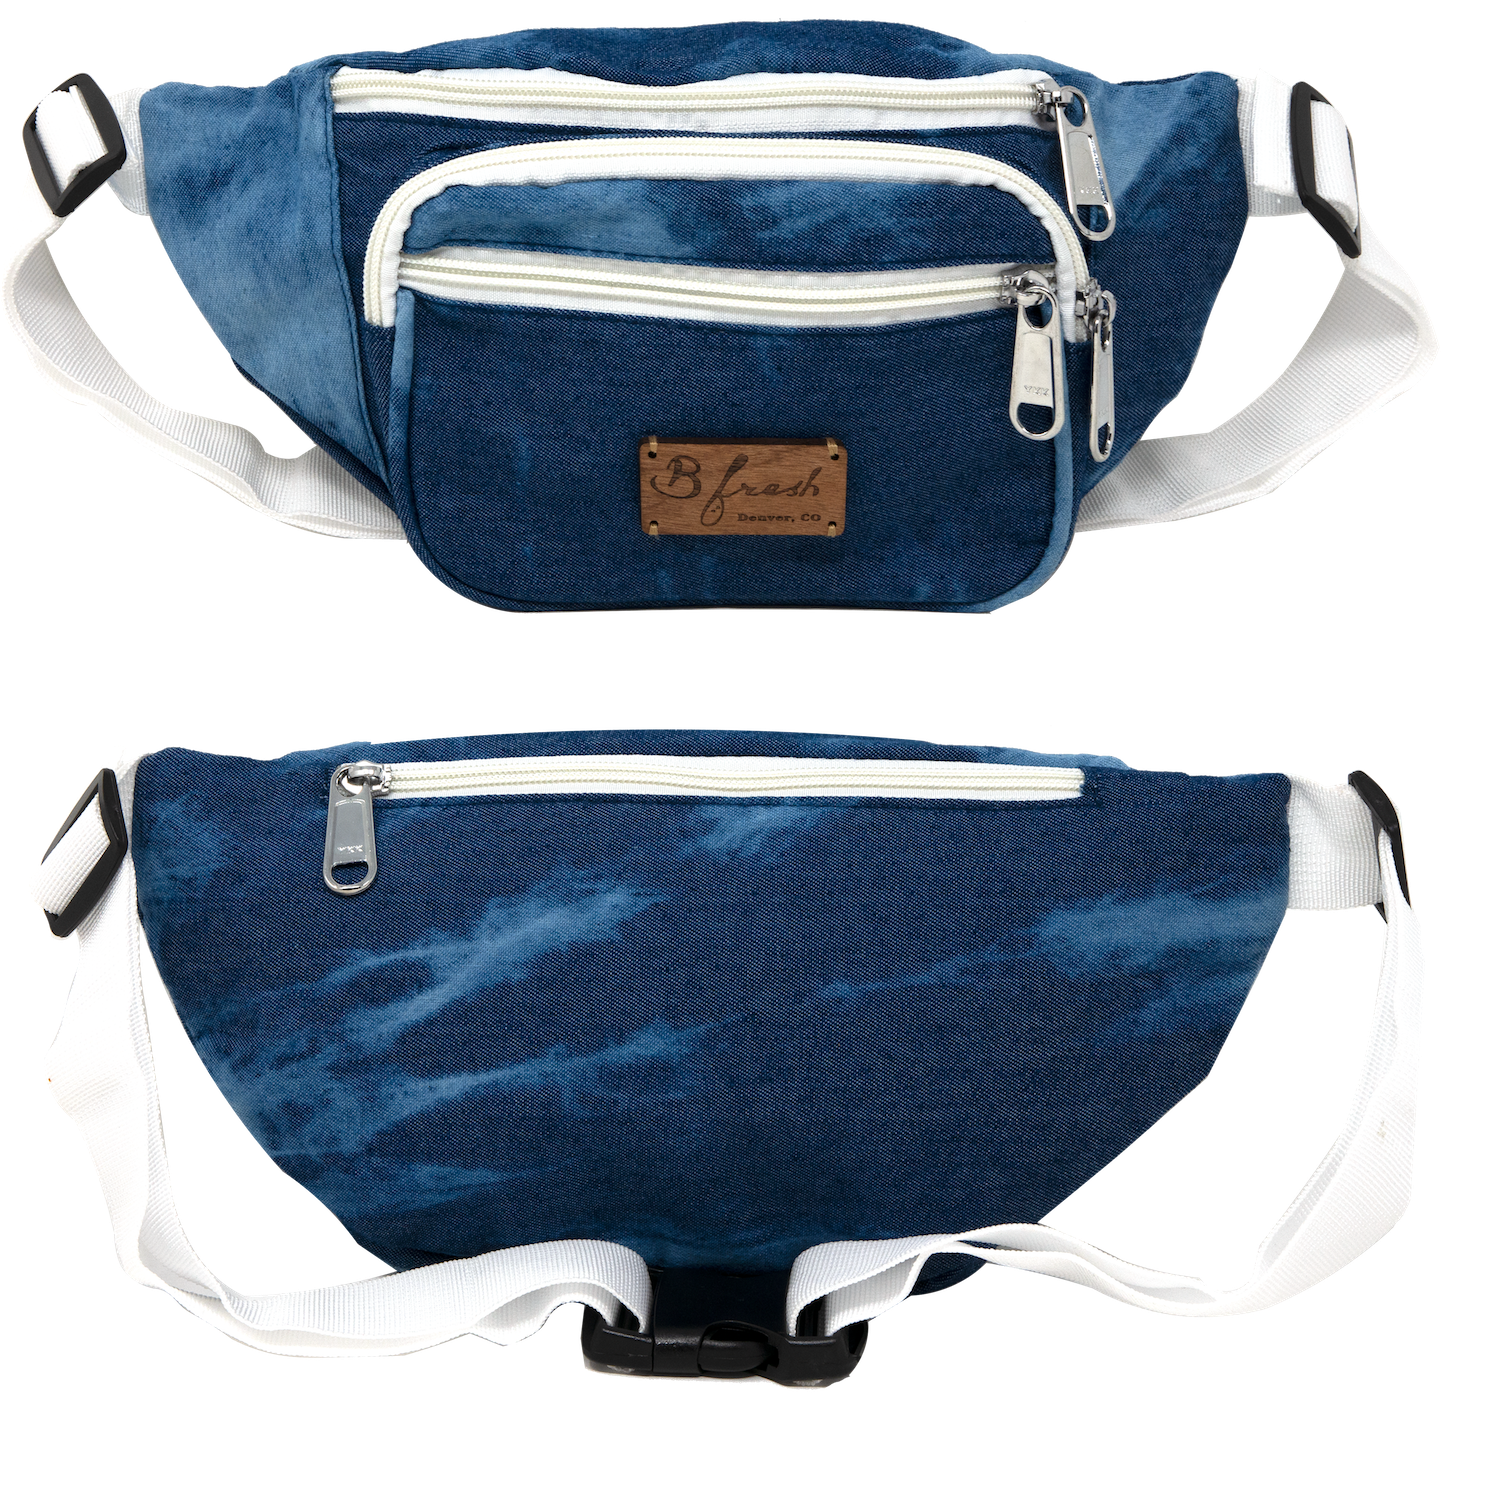 Lucy's Jeans Acid Washed Denim Fanny Pack - B Fresh